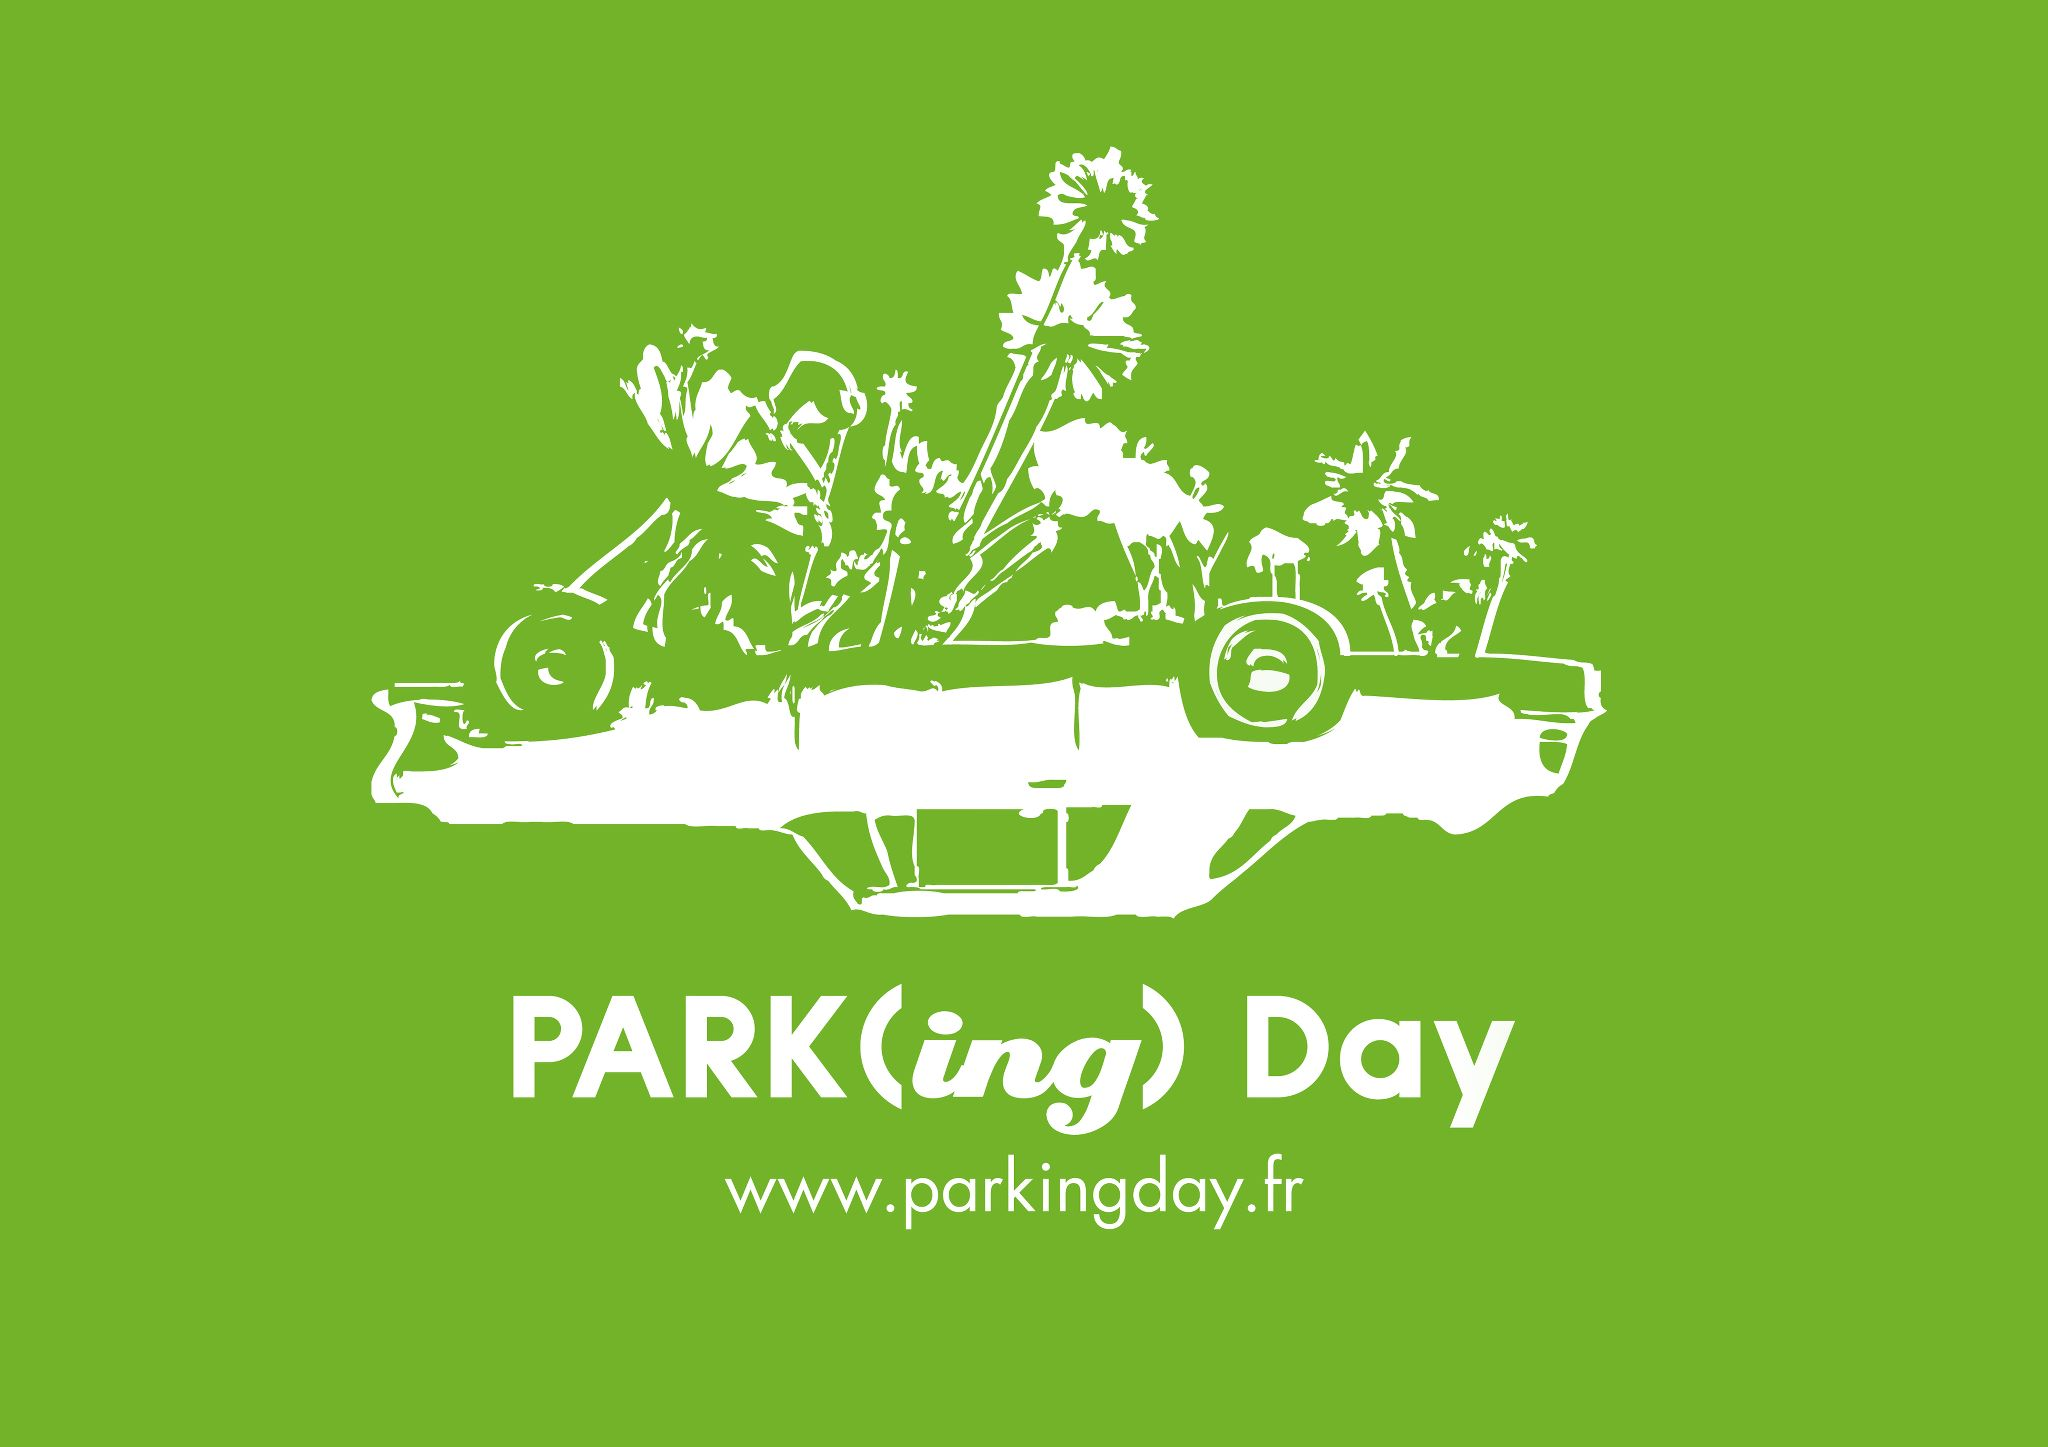 Le Parking Day réinvente la ville